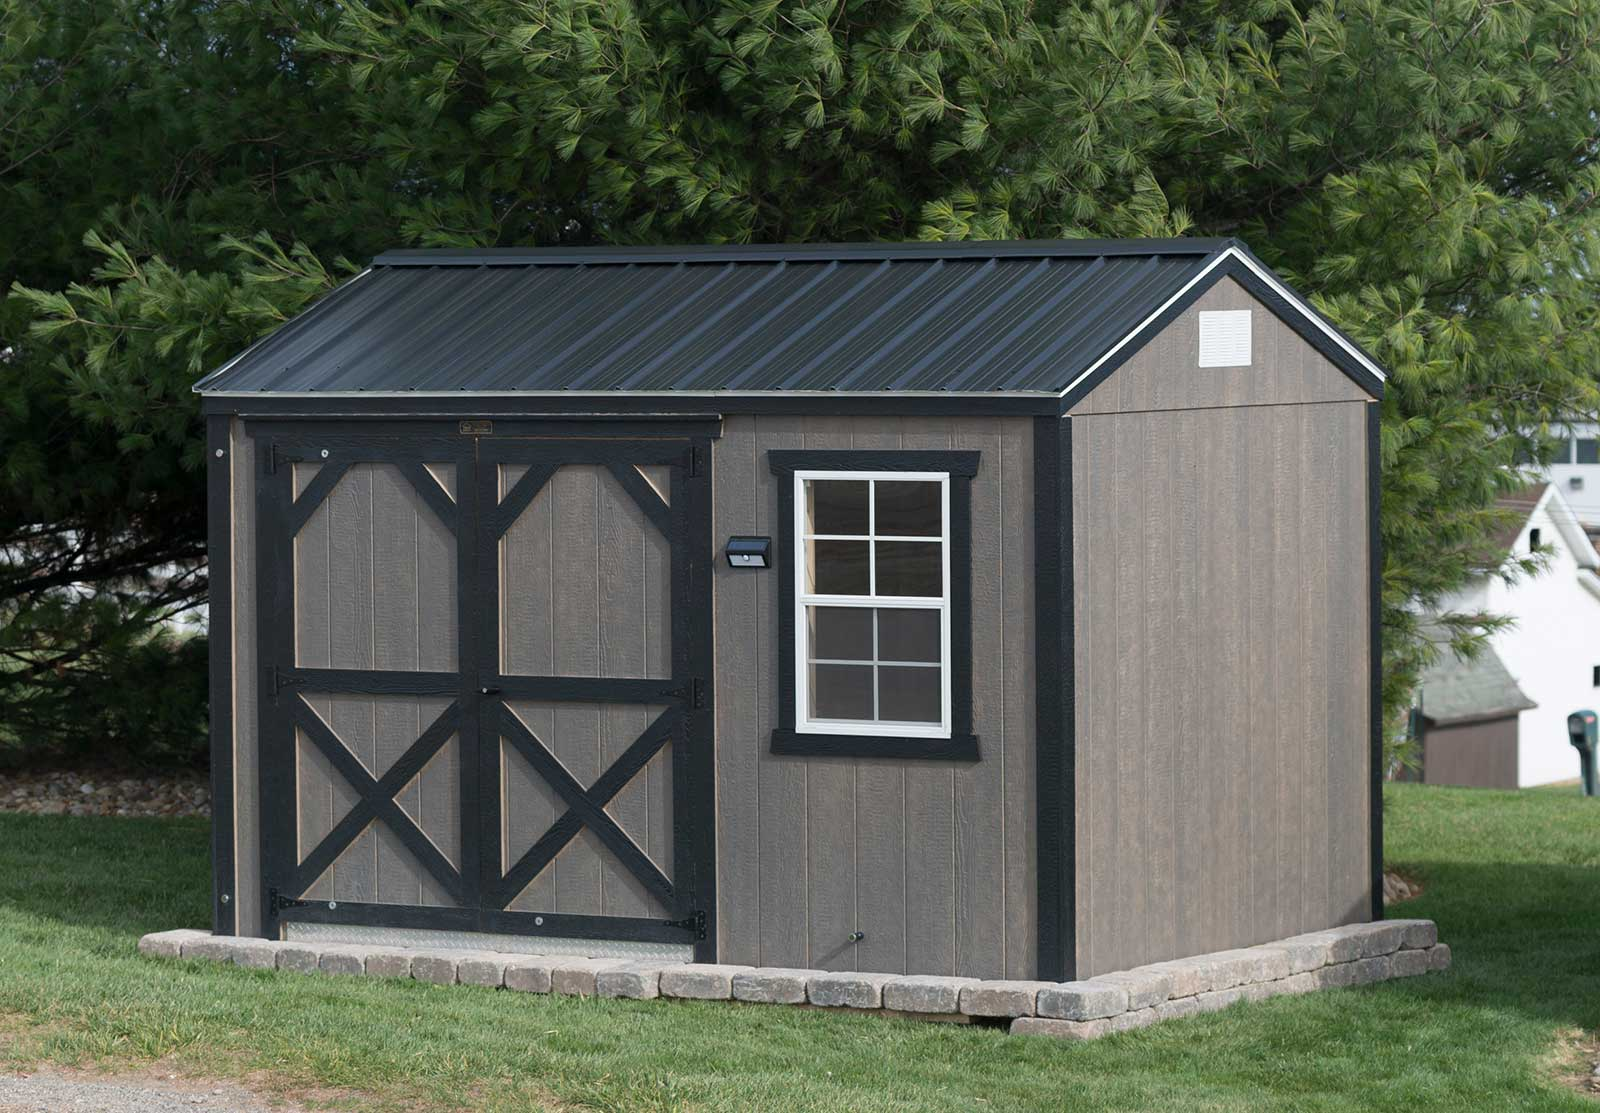 Painted Smart shed